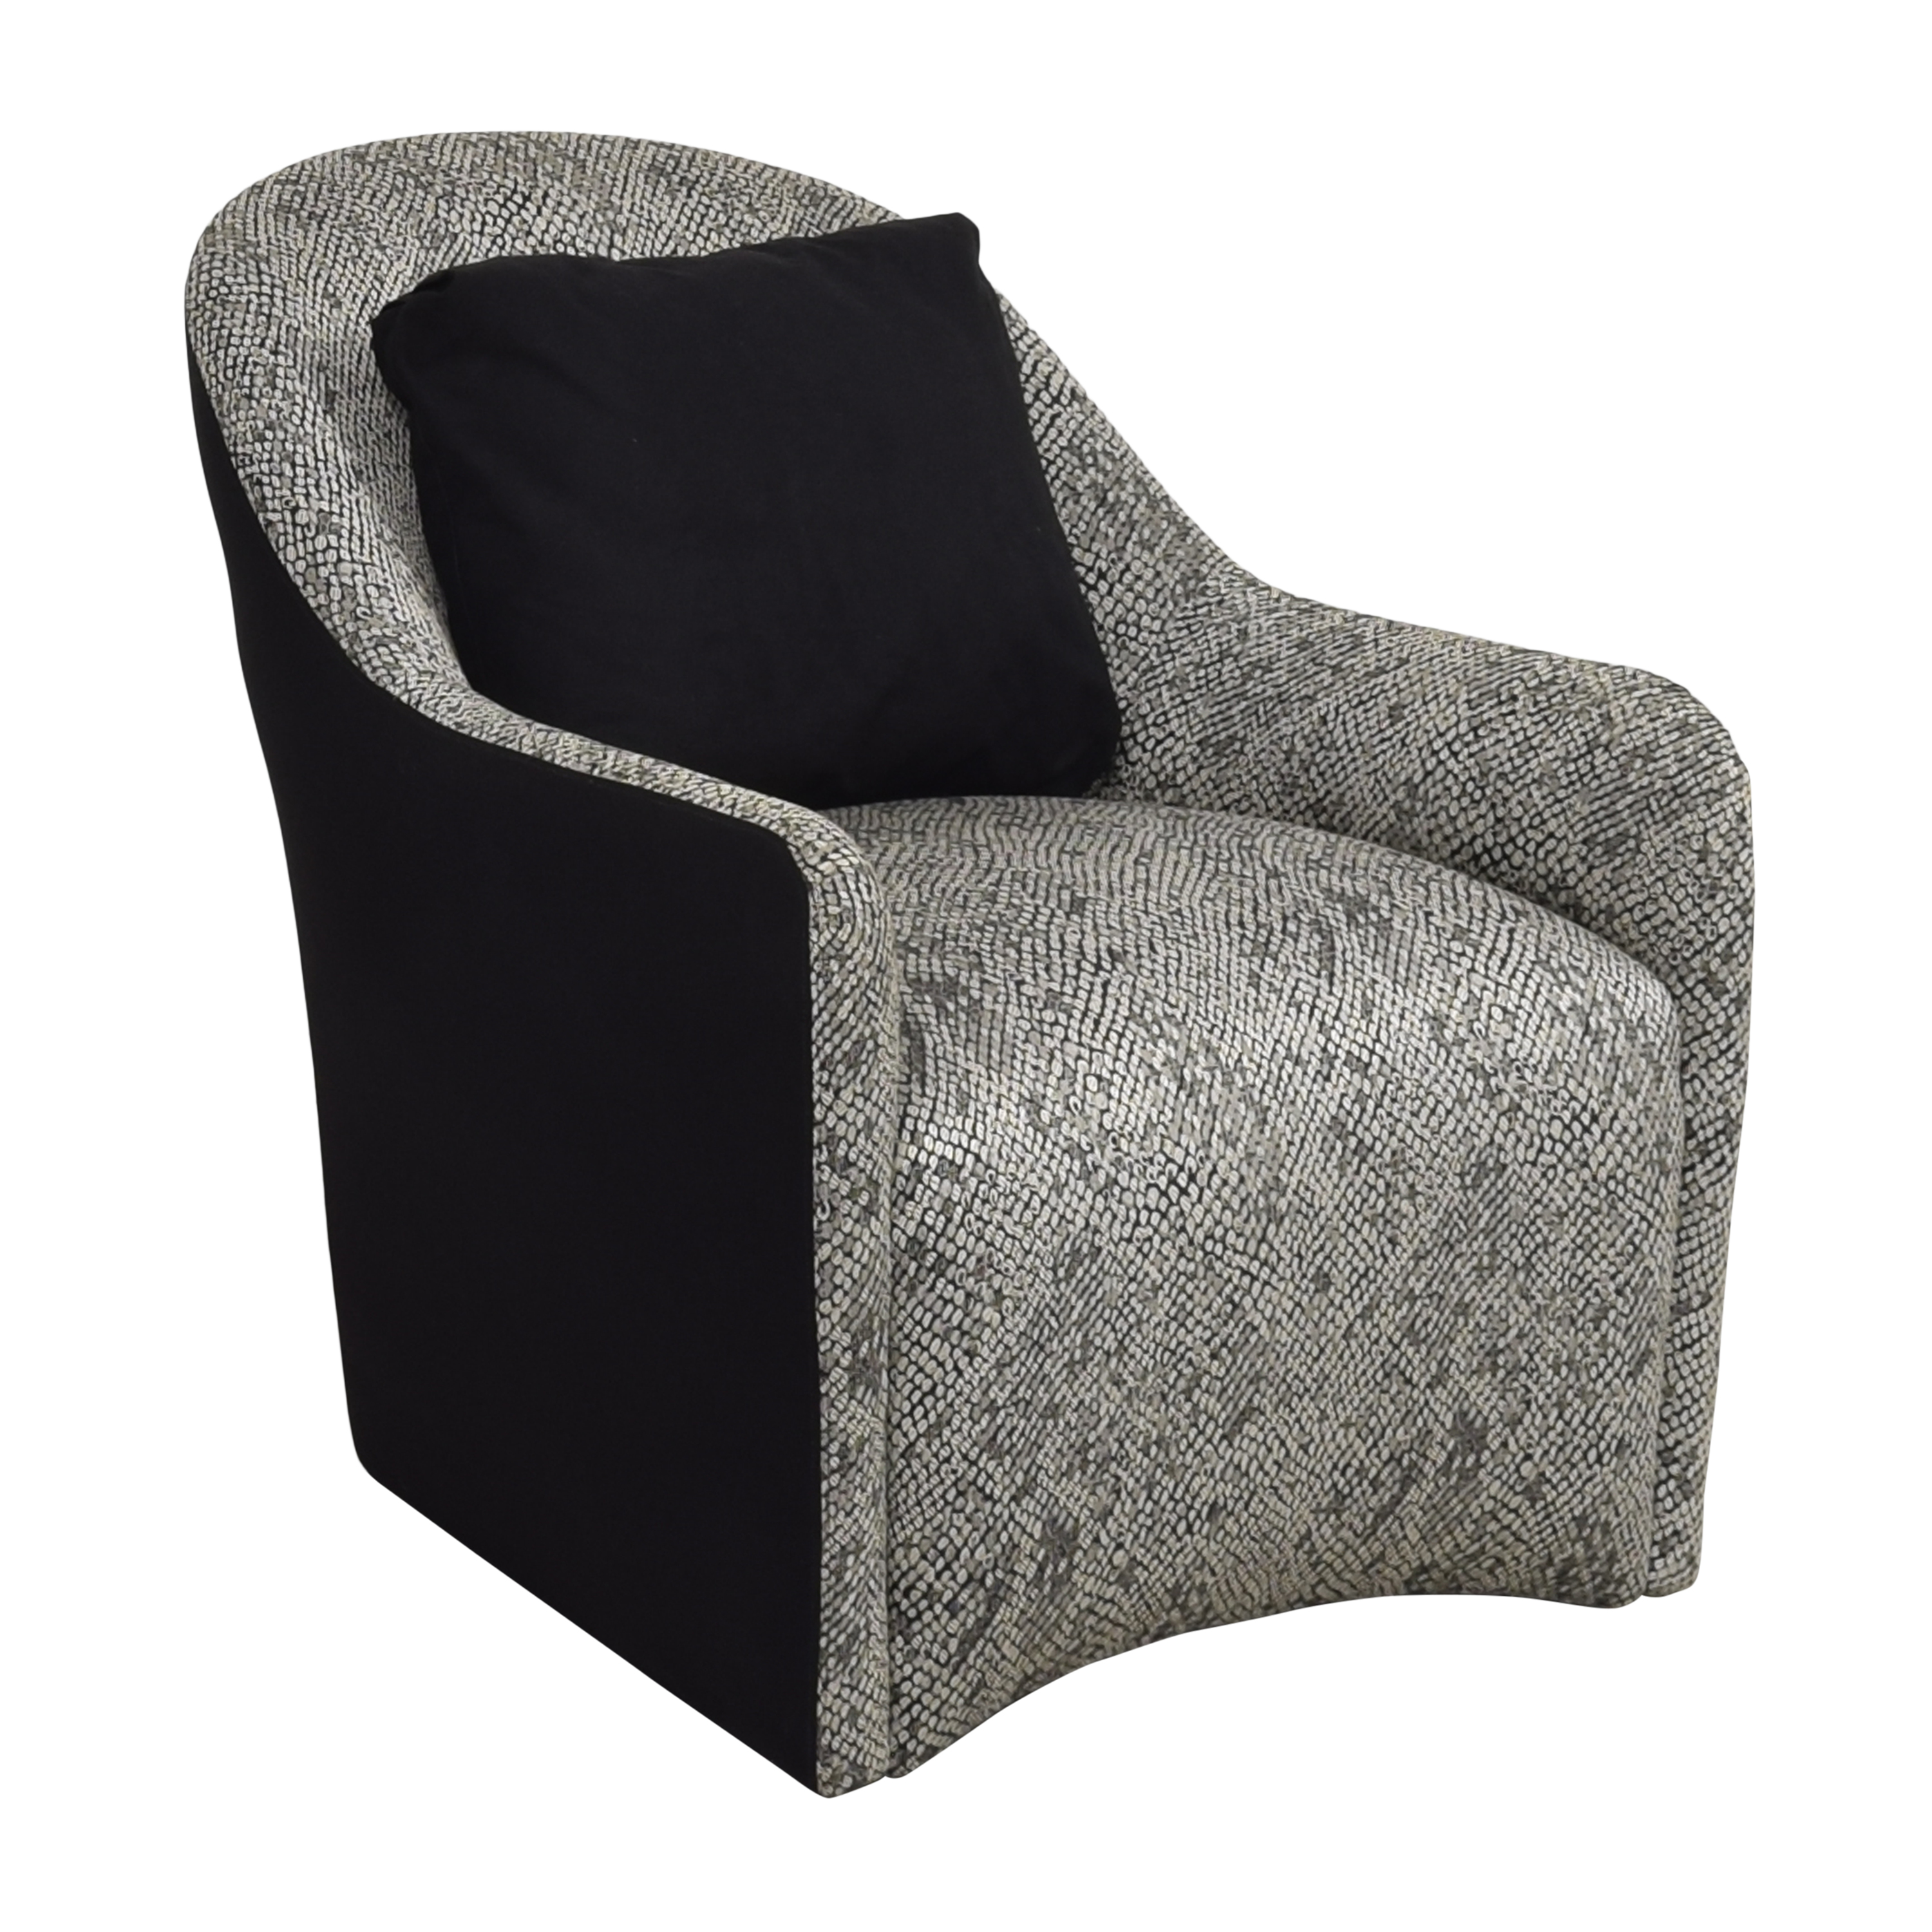 Caiati Caiati Classic Collections Accent Chair coupon